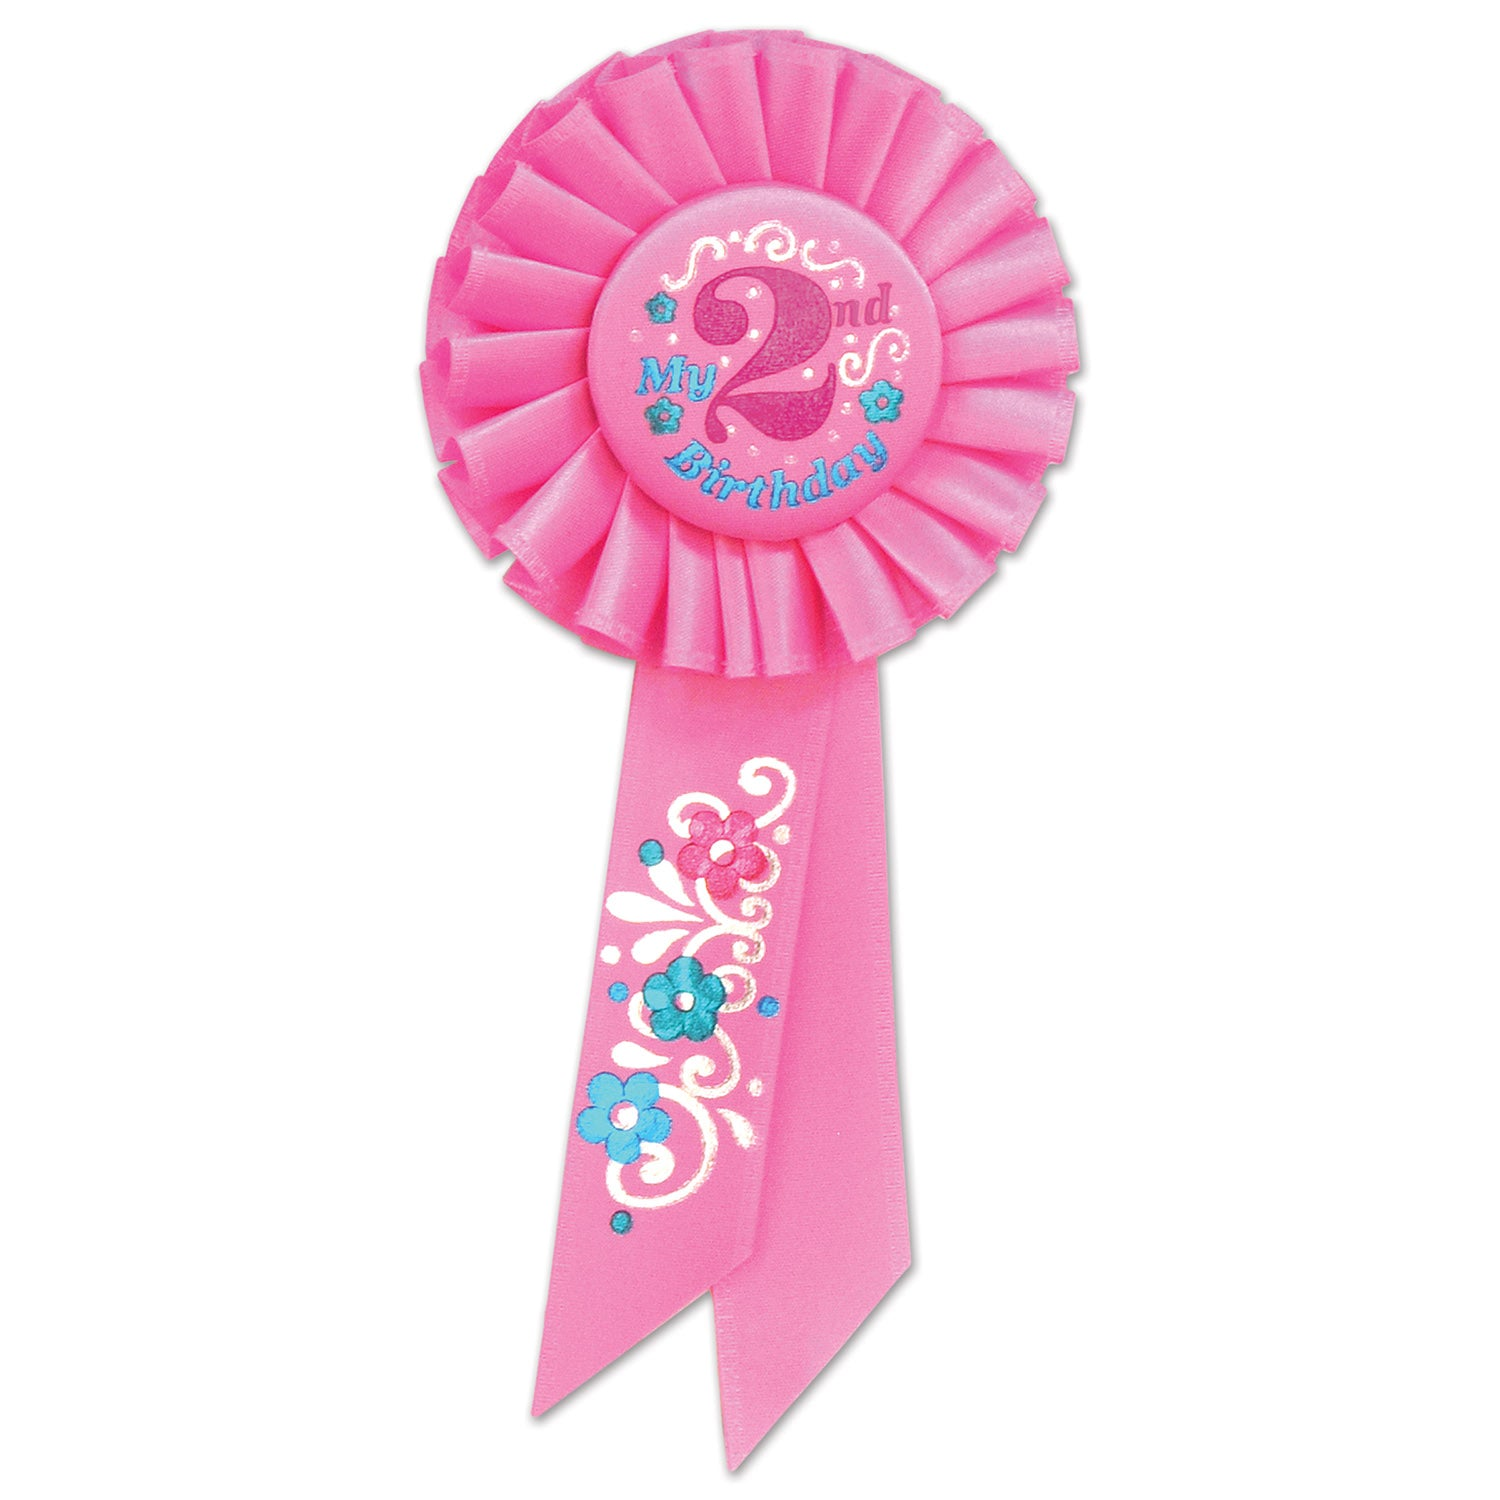 My 2nd Birthday Rosette, pink by Beistle - 2nd Birthday Party Decorations